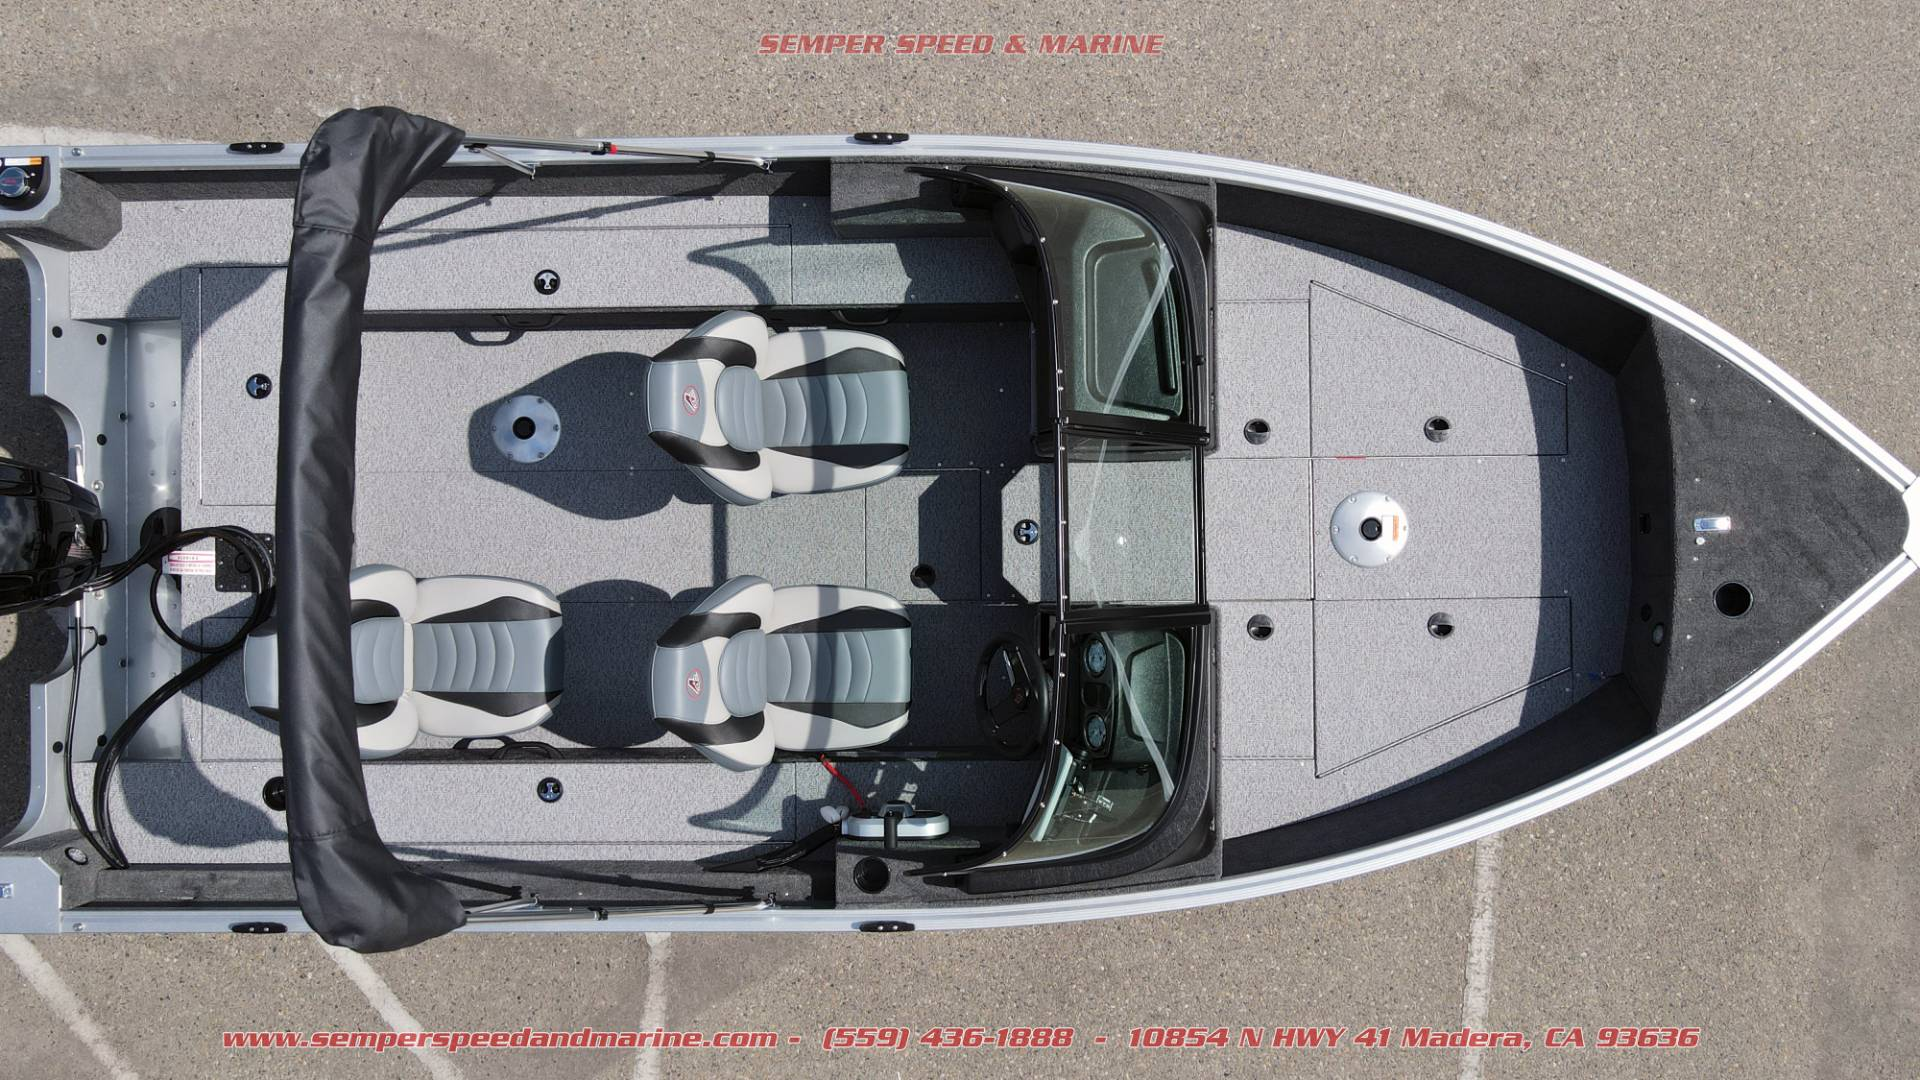 2021 Alumacraft Voyageur 175 Sport in Madera, California - Photo 3